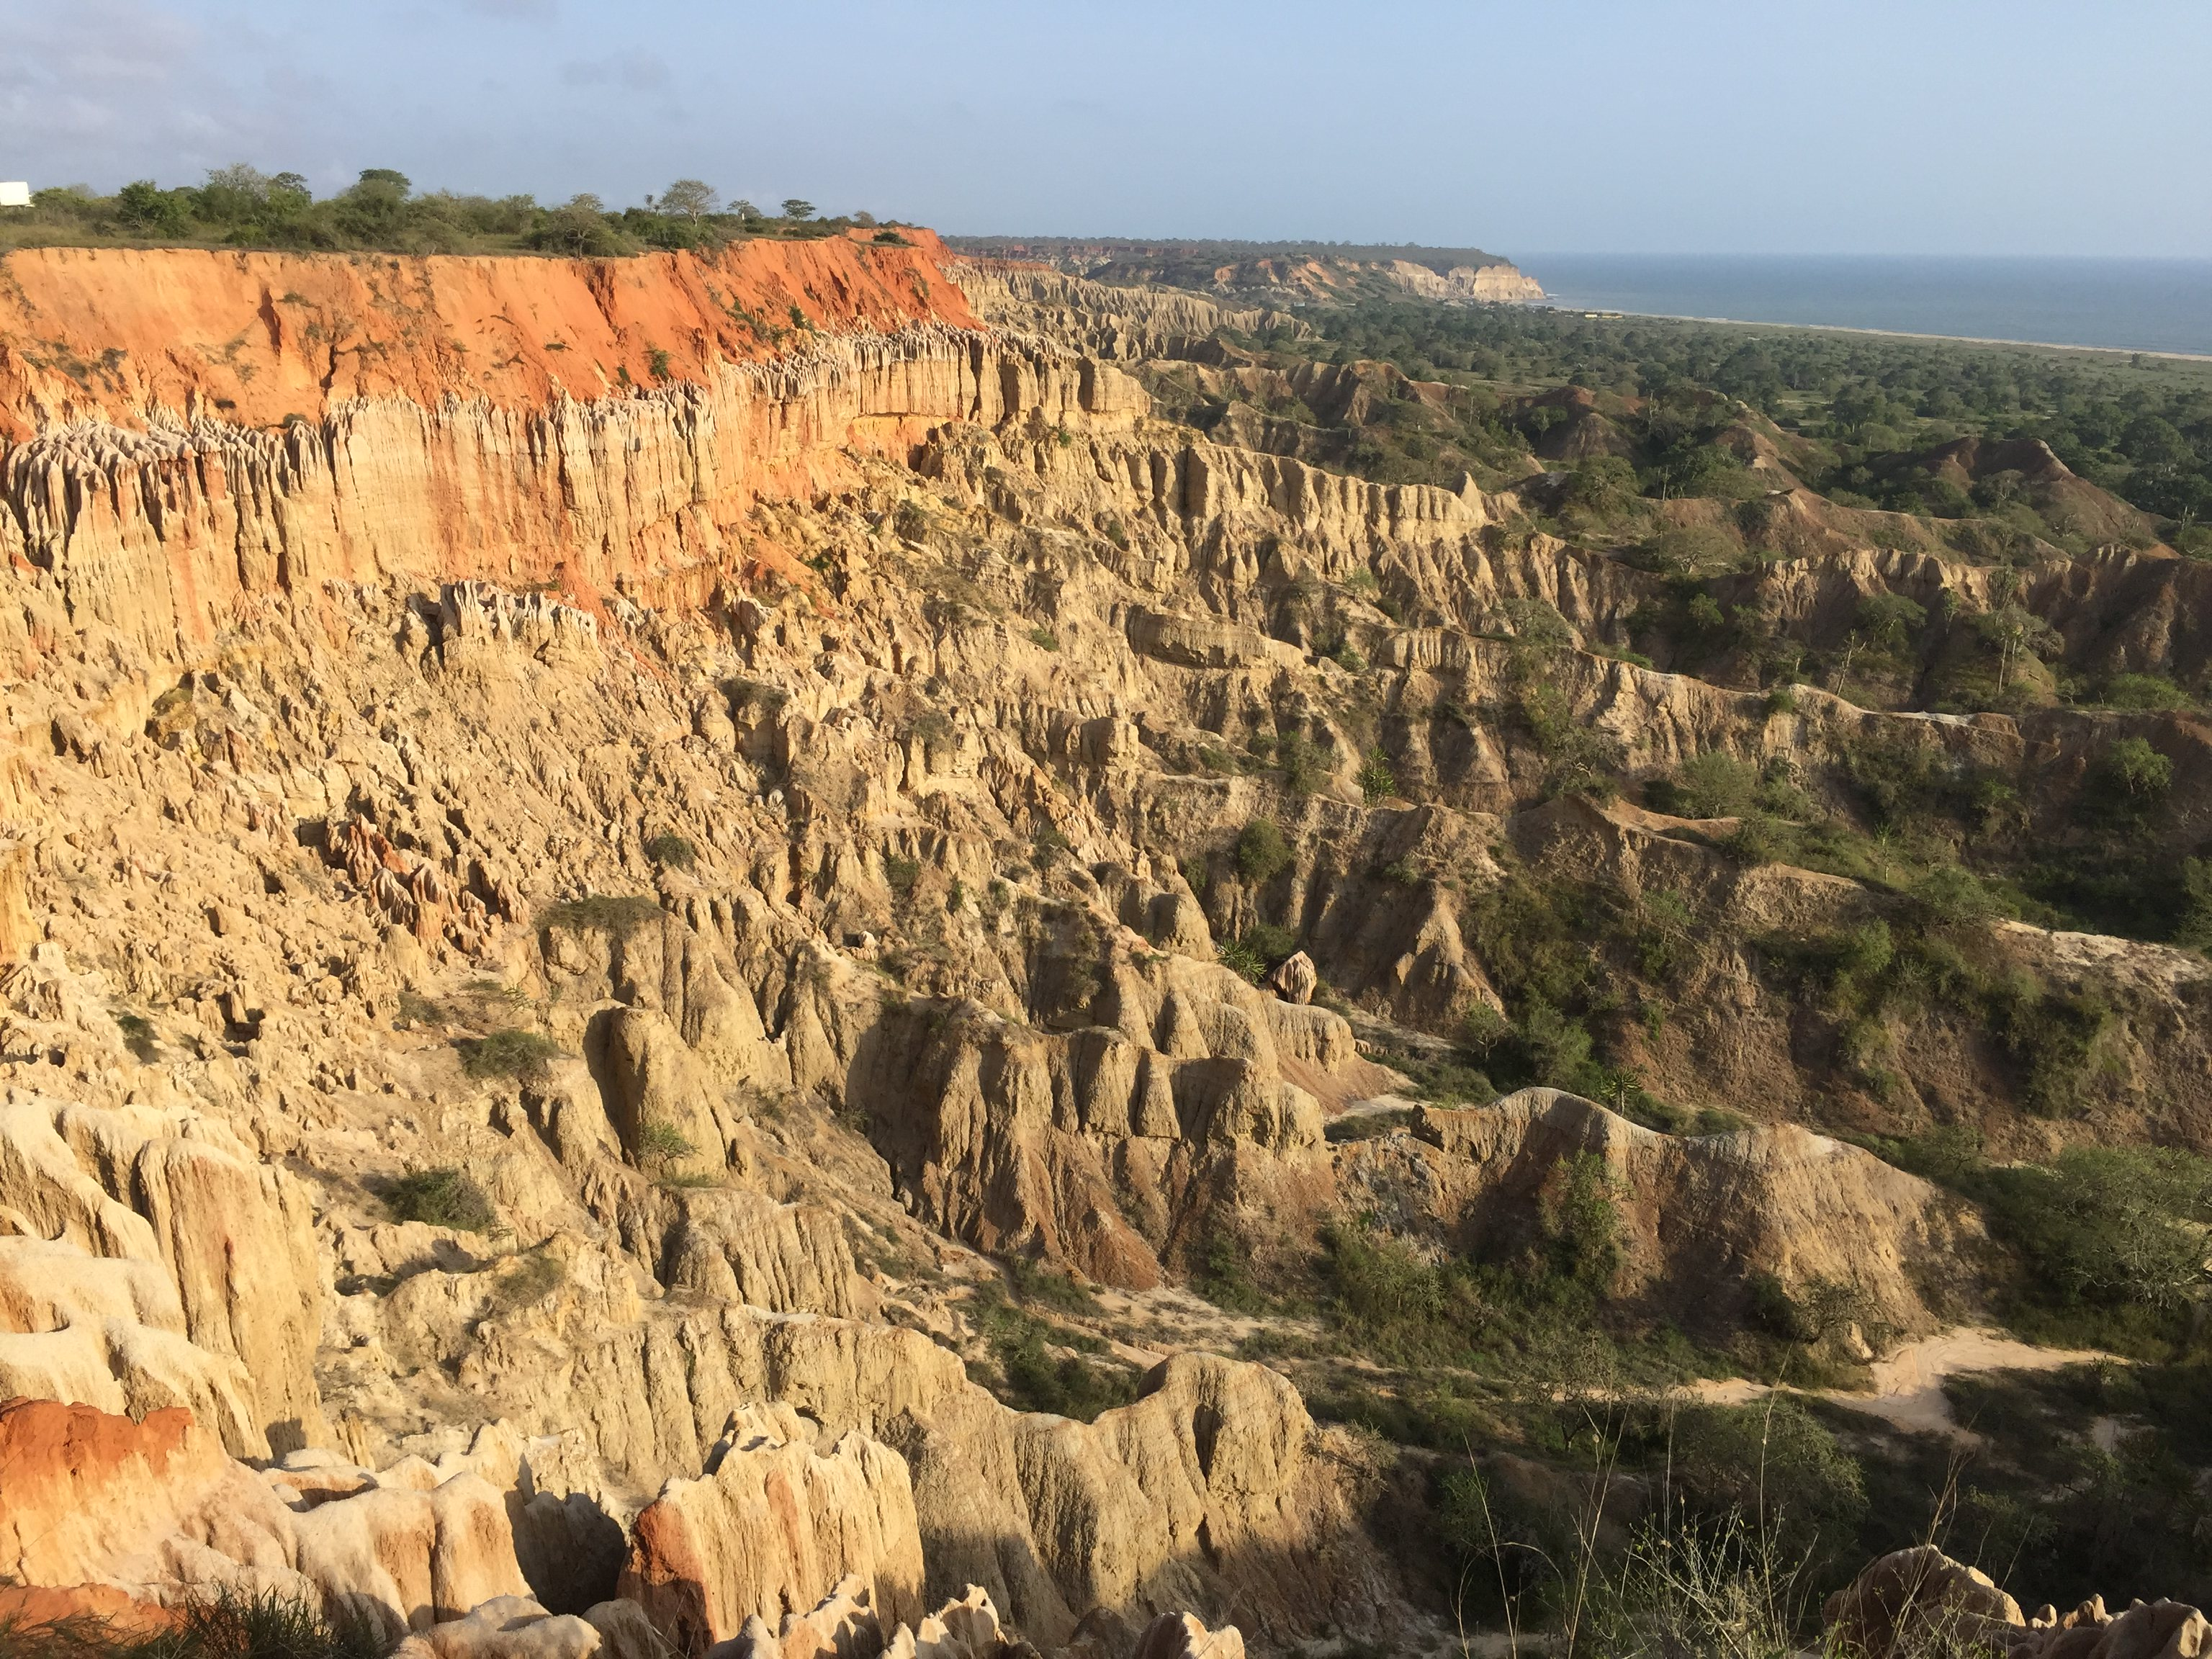 The Moon Valley near Cuanza, Kwanza River, The Miradouro da Lua, The Luanda Mirador, Luanda, Angola